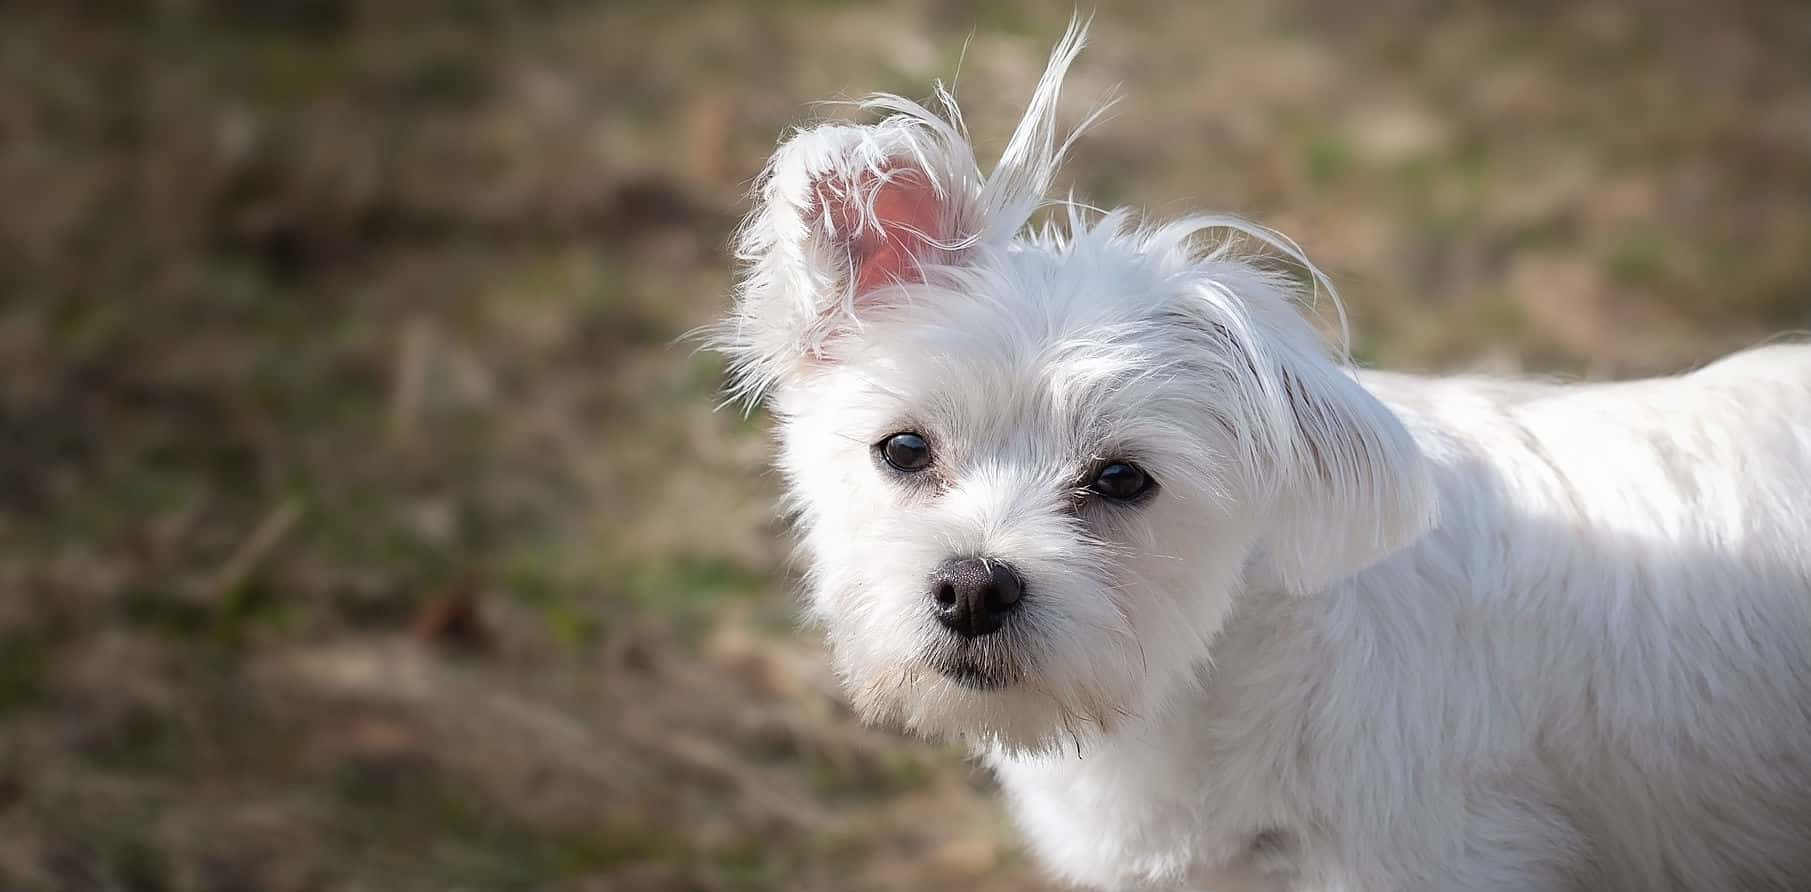 How is white shaker dog syndrome diagnosed?